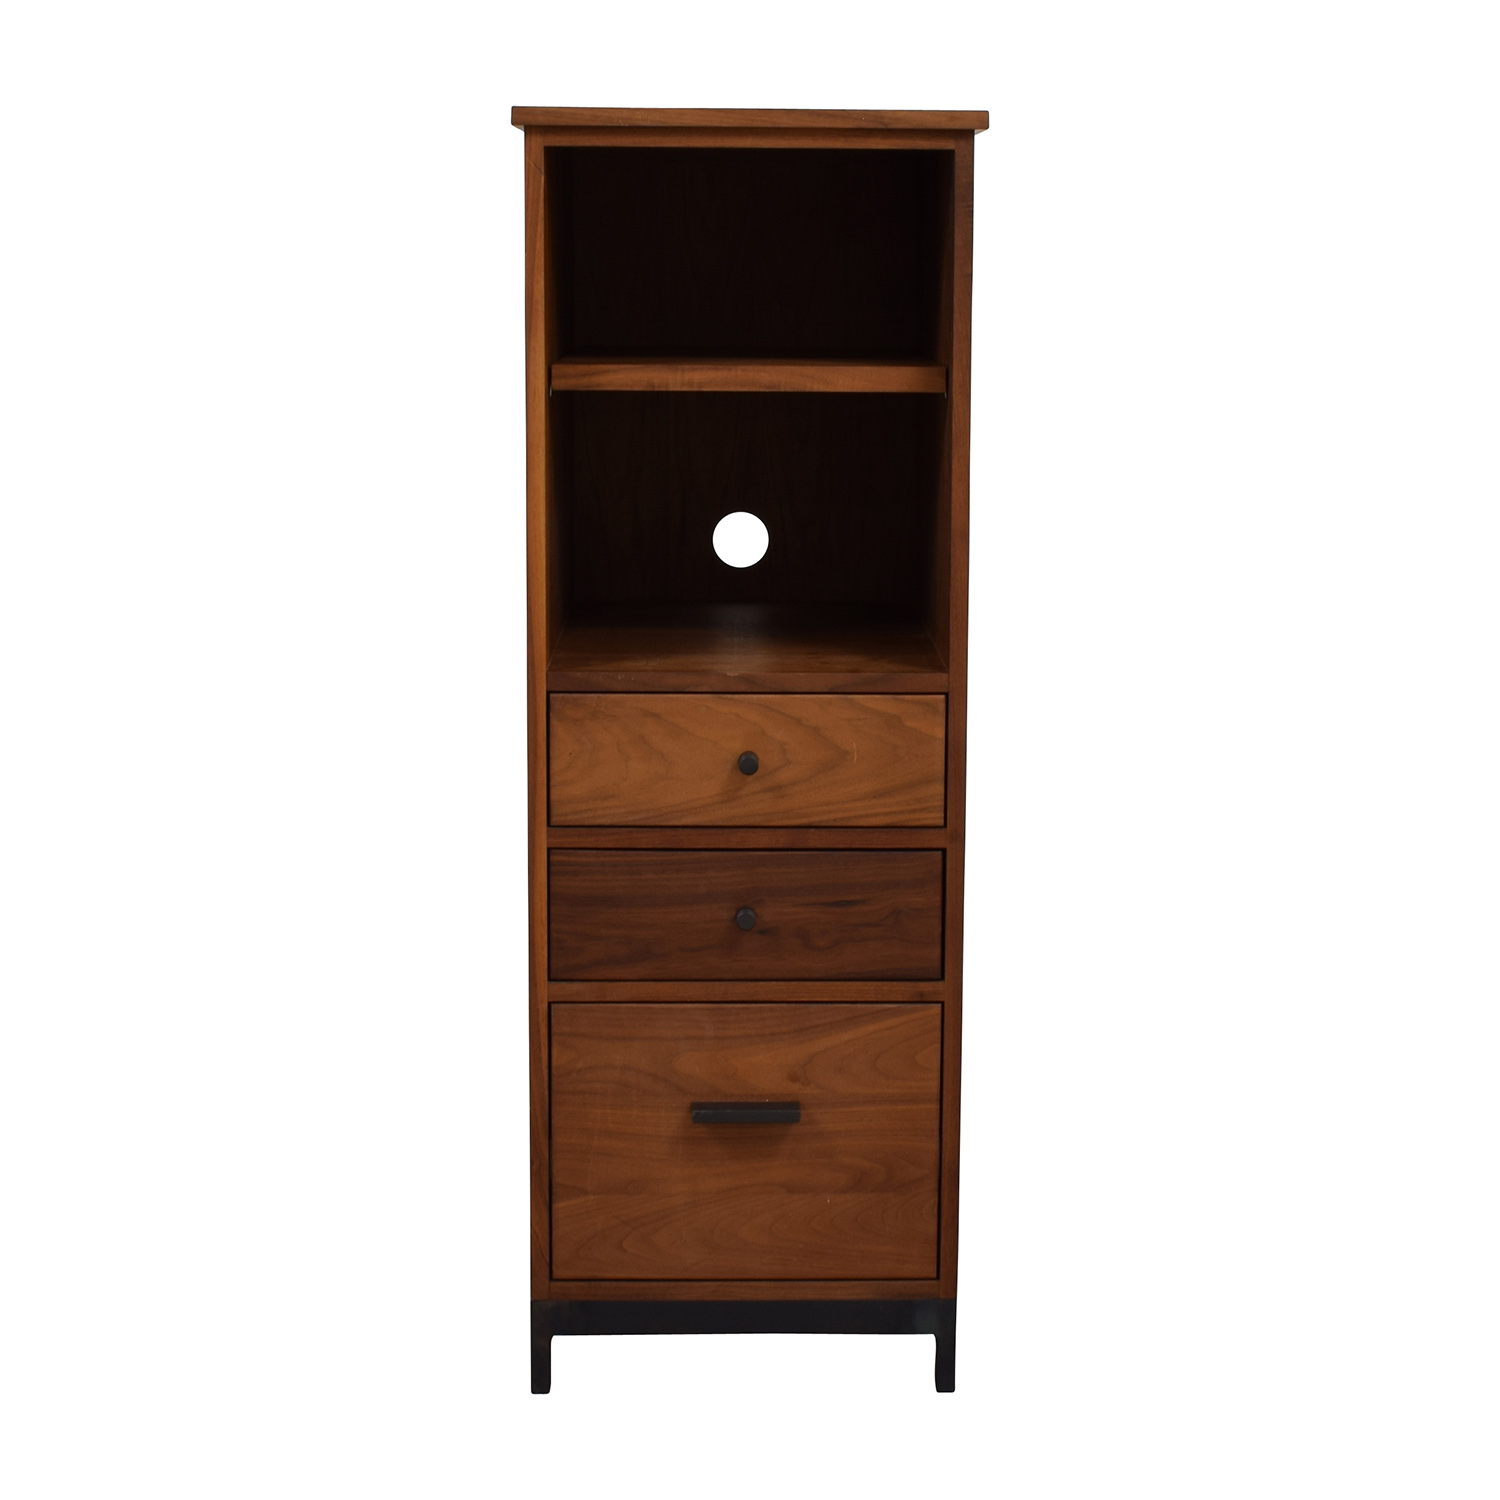 Crate and Barrel Crate and Barrel Tall Dresser or Shelf on sale